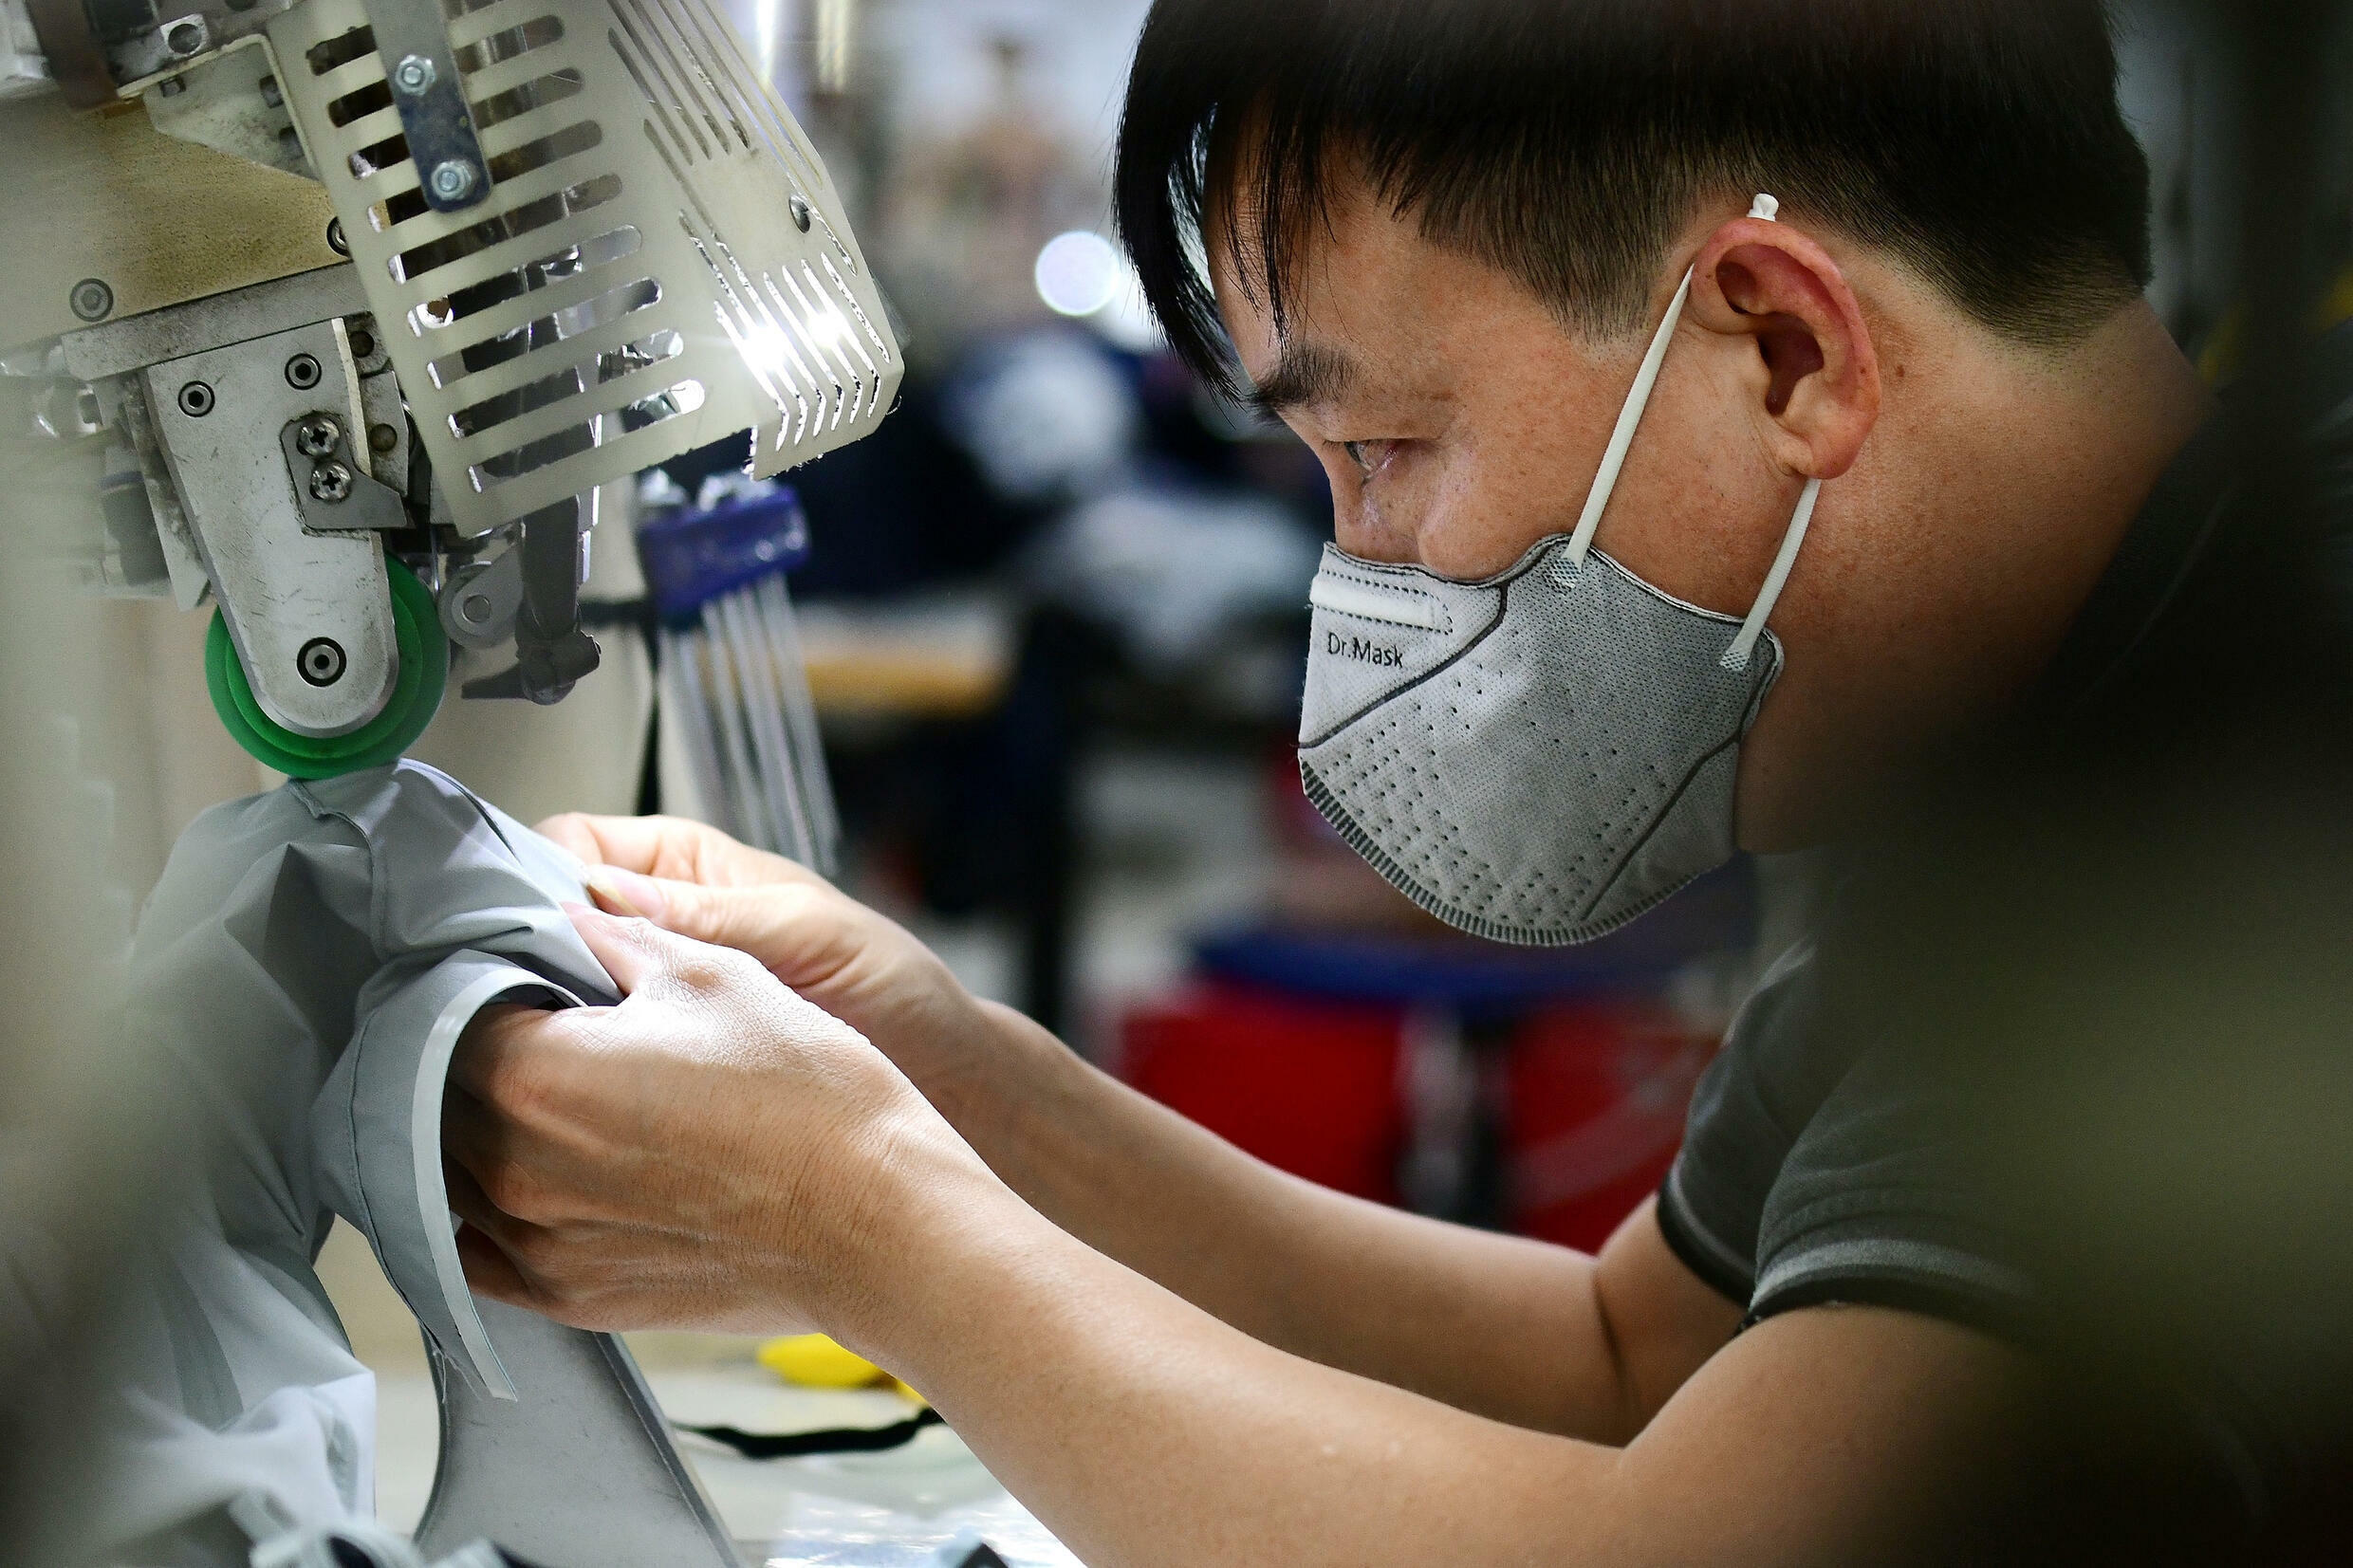 Increases at Vietnamese factories are part of global crisis that is pushing inflation up and raising concerns over resumption of pandemic